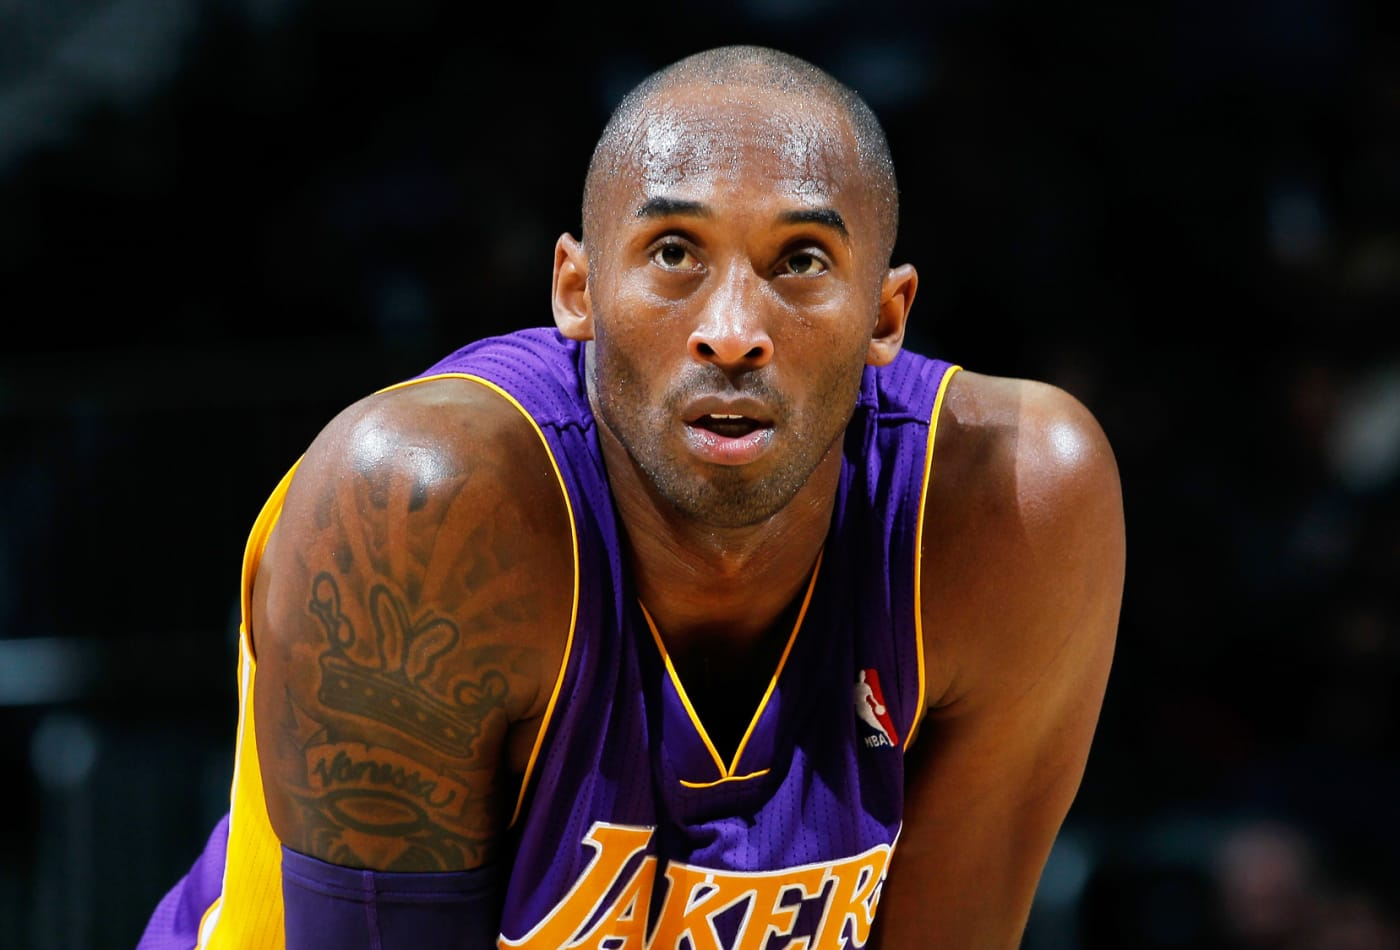 """You are currently viewing Tribute to """"Kobe Bryant"""" – one year remembrance"""